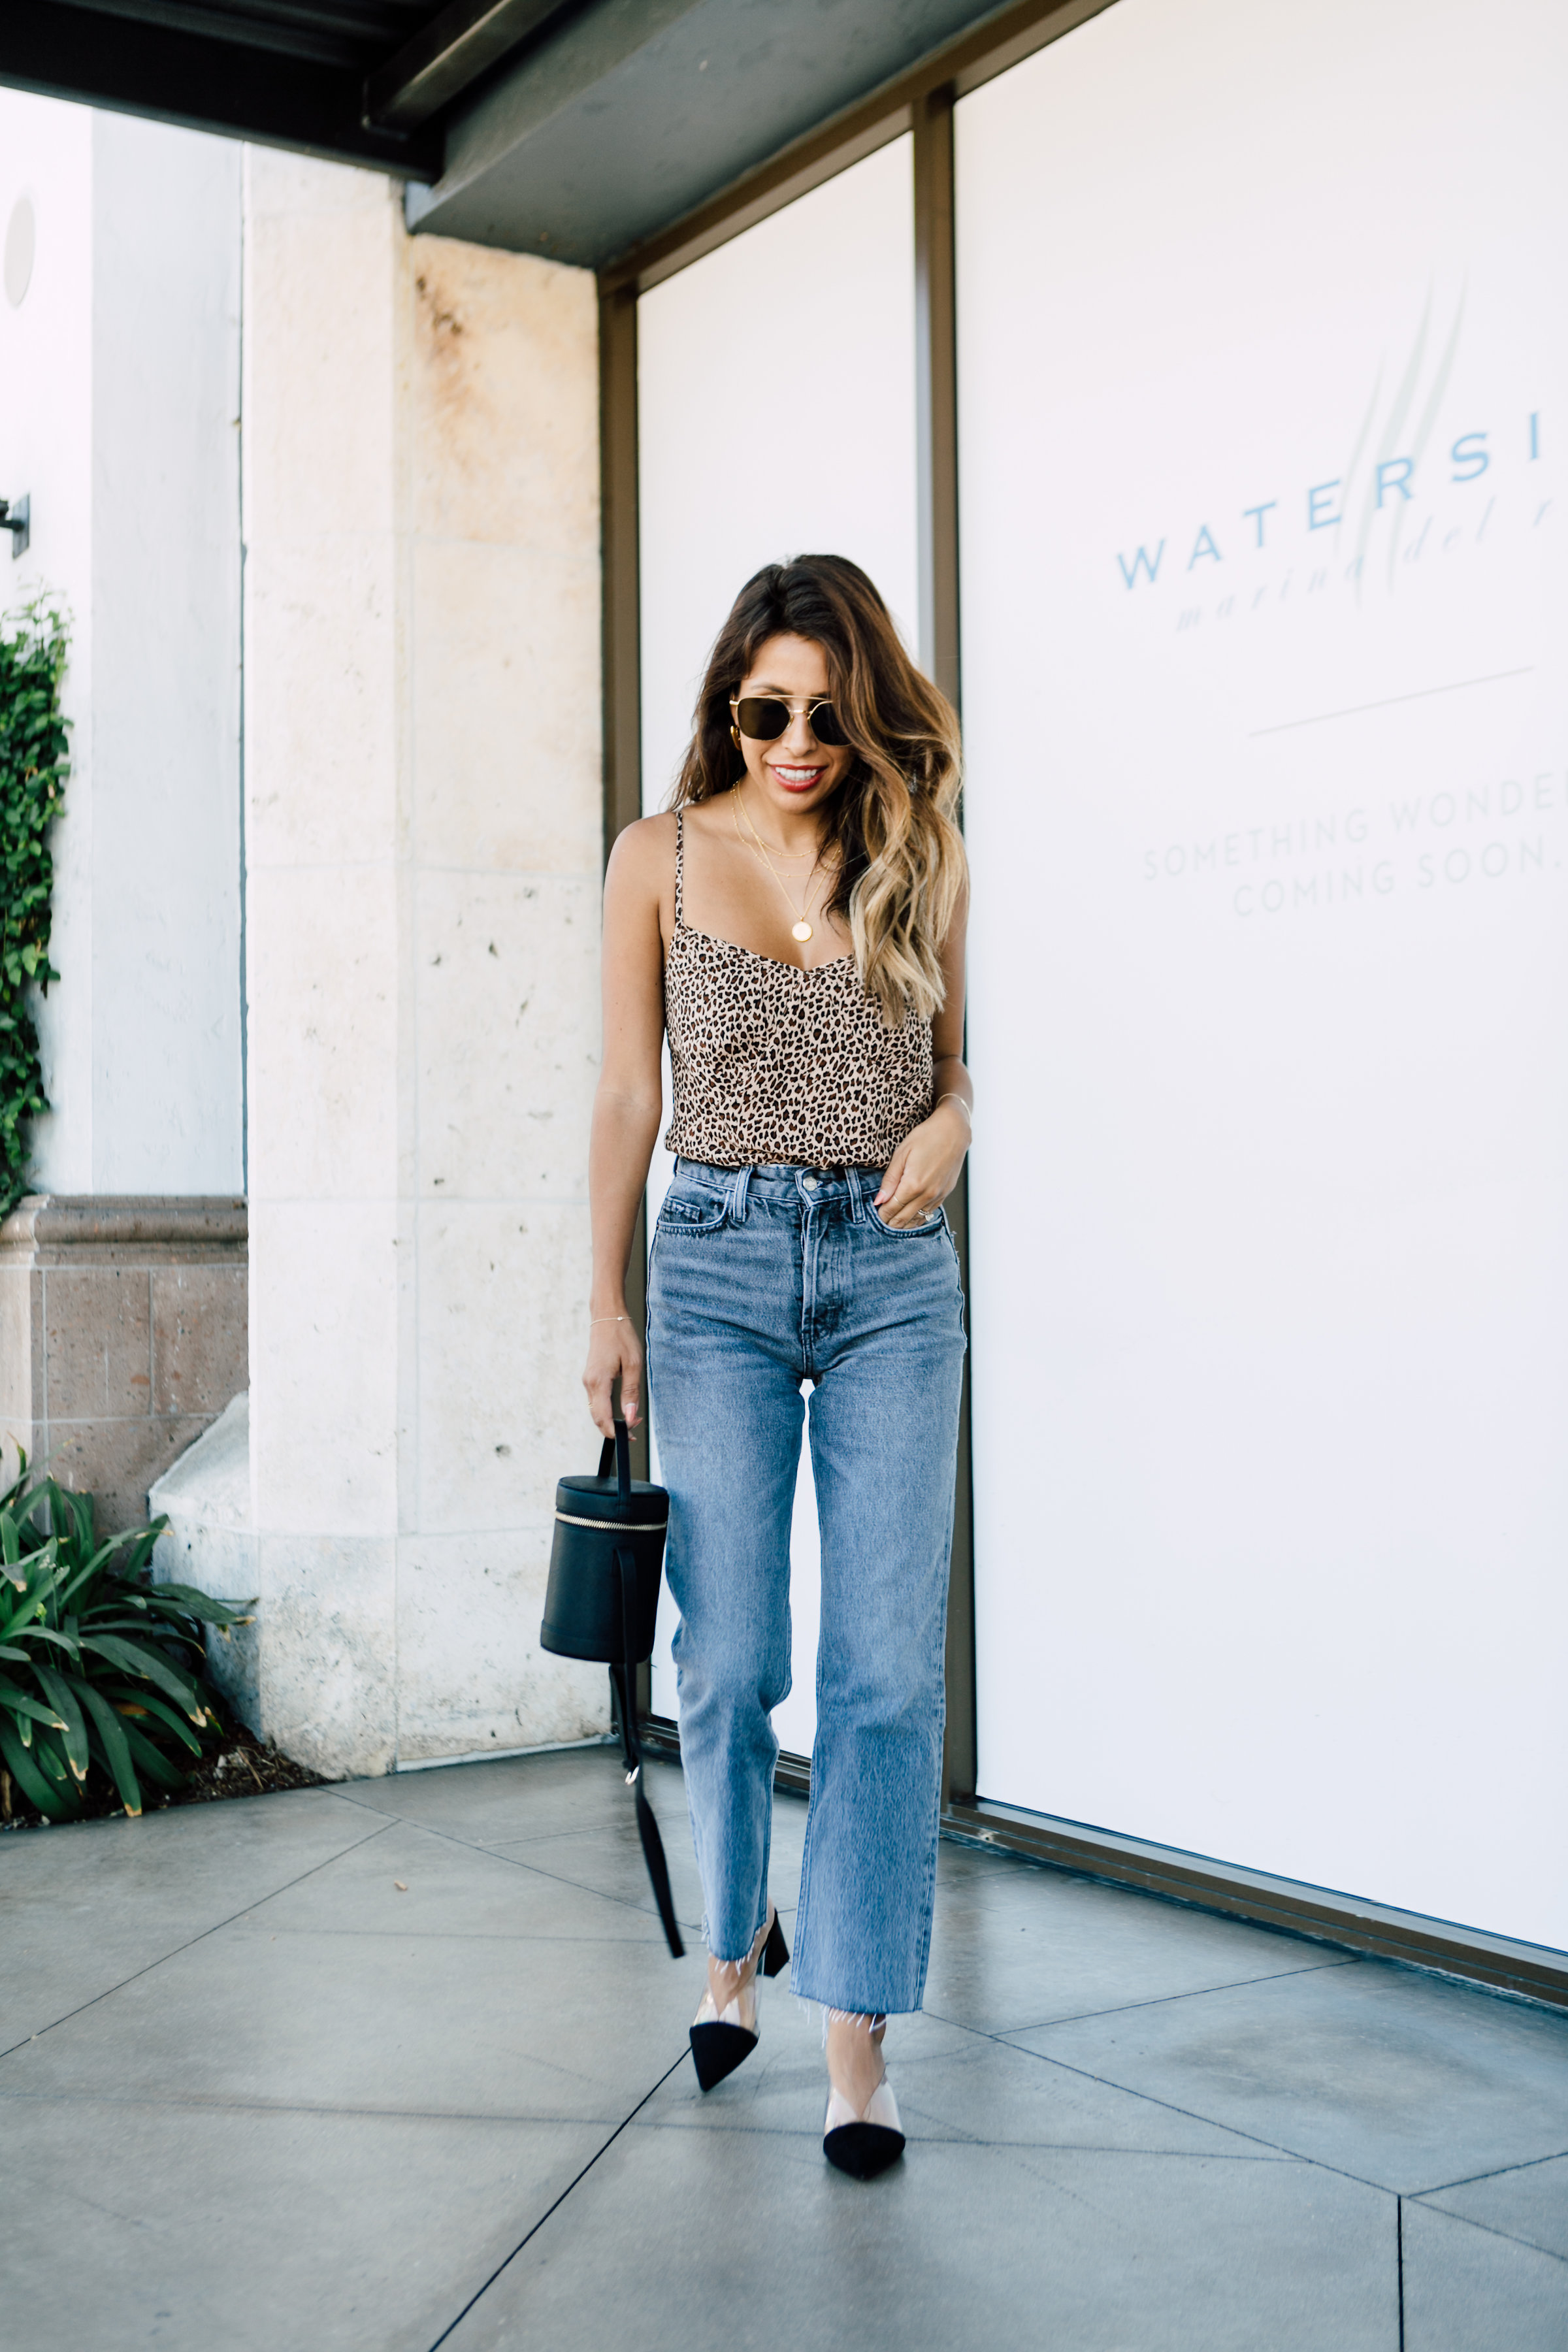 Petite Style: Mom Jeans + Leopard Cami. Wearing Zara, Nordstrom, and August the Label